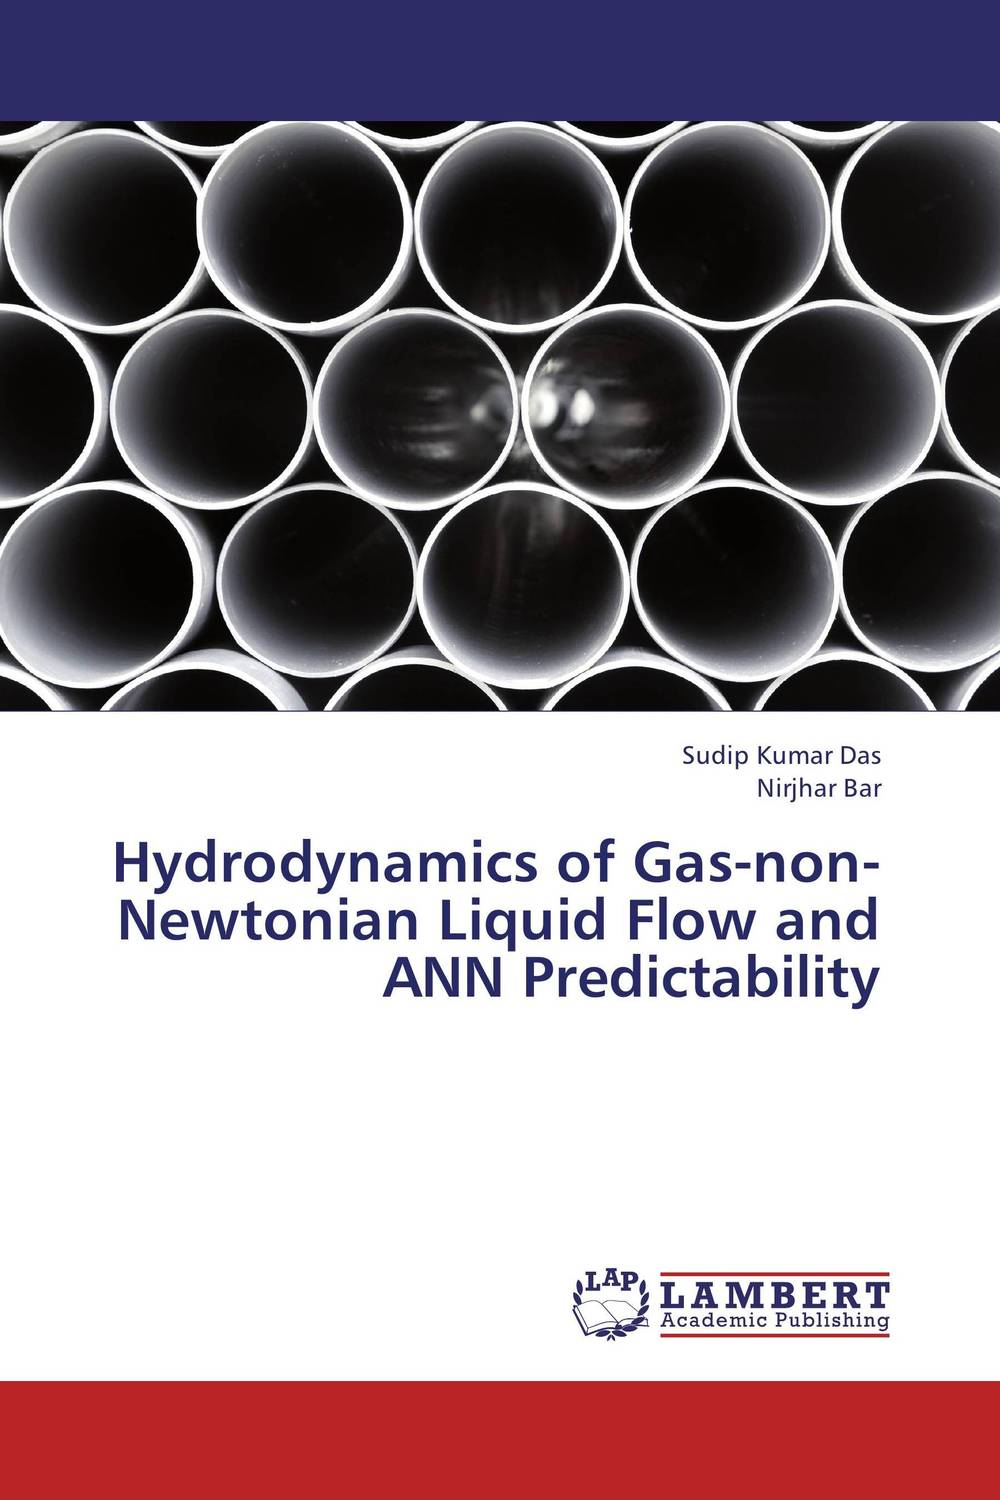 Hydrodynamics of Gas-non-Newtonian Liquid Flow and ANN Predictability esam jassim hydrate formation and deposition in natural gas flow line